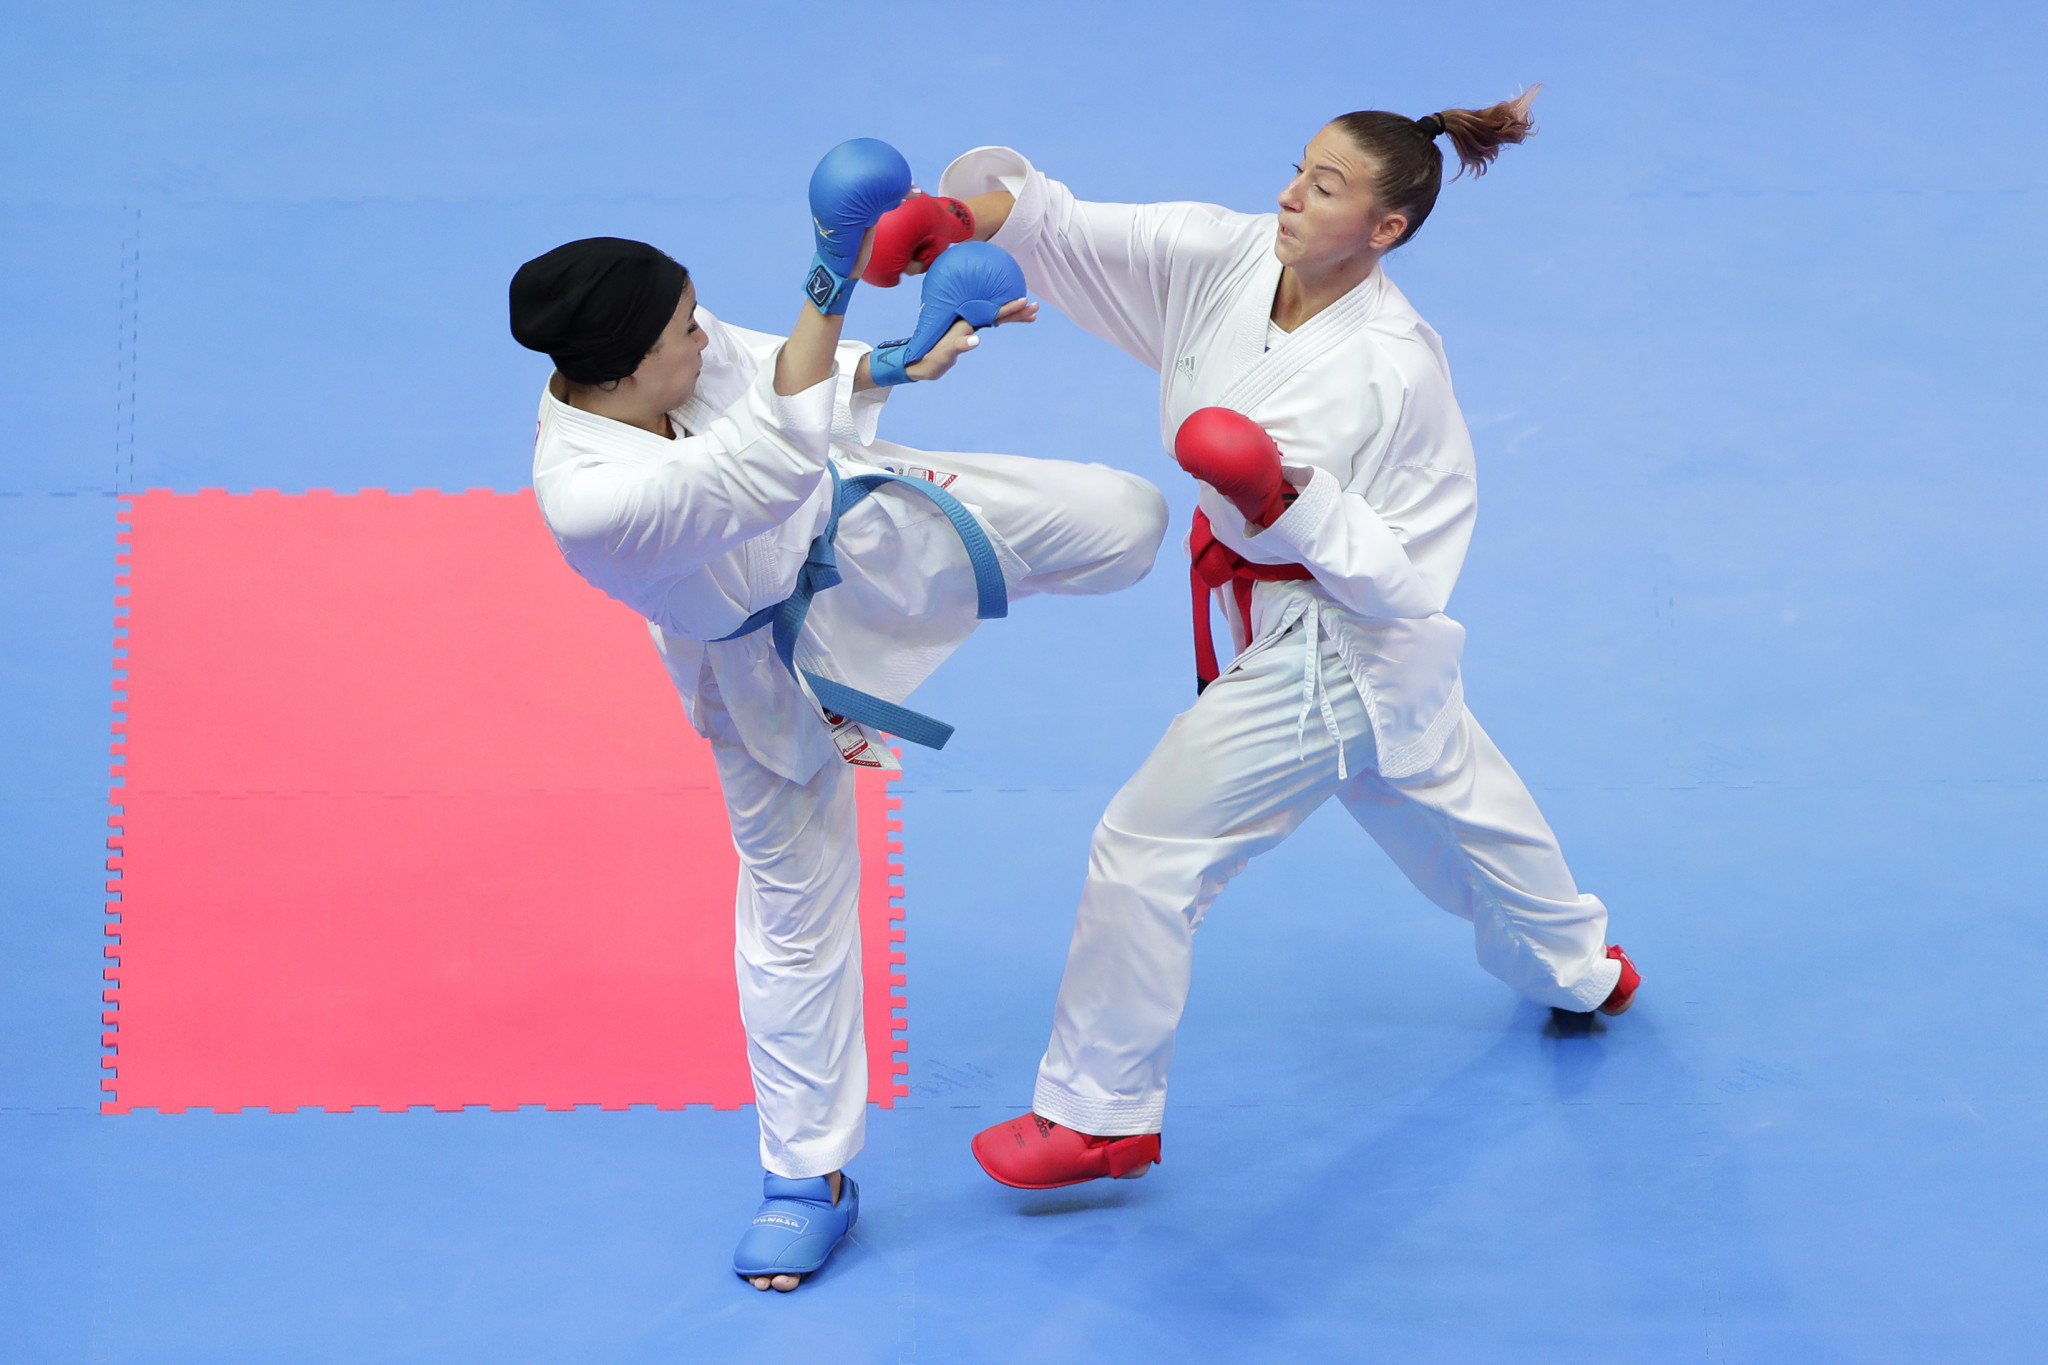 France's Alexandra Recchia, right, is a two-time individual and three-time team world champion ©Getty Images